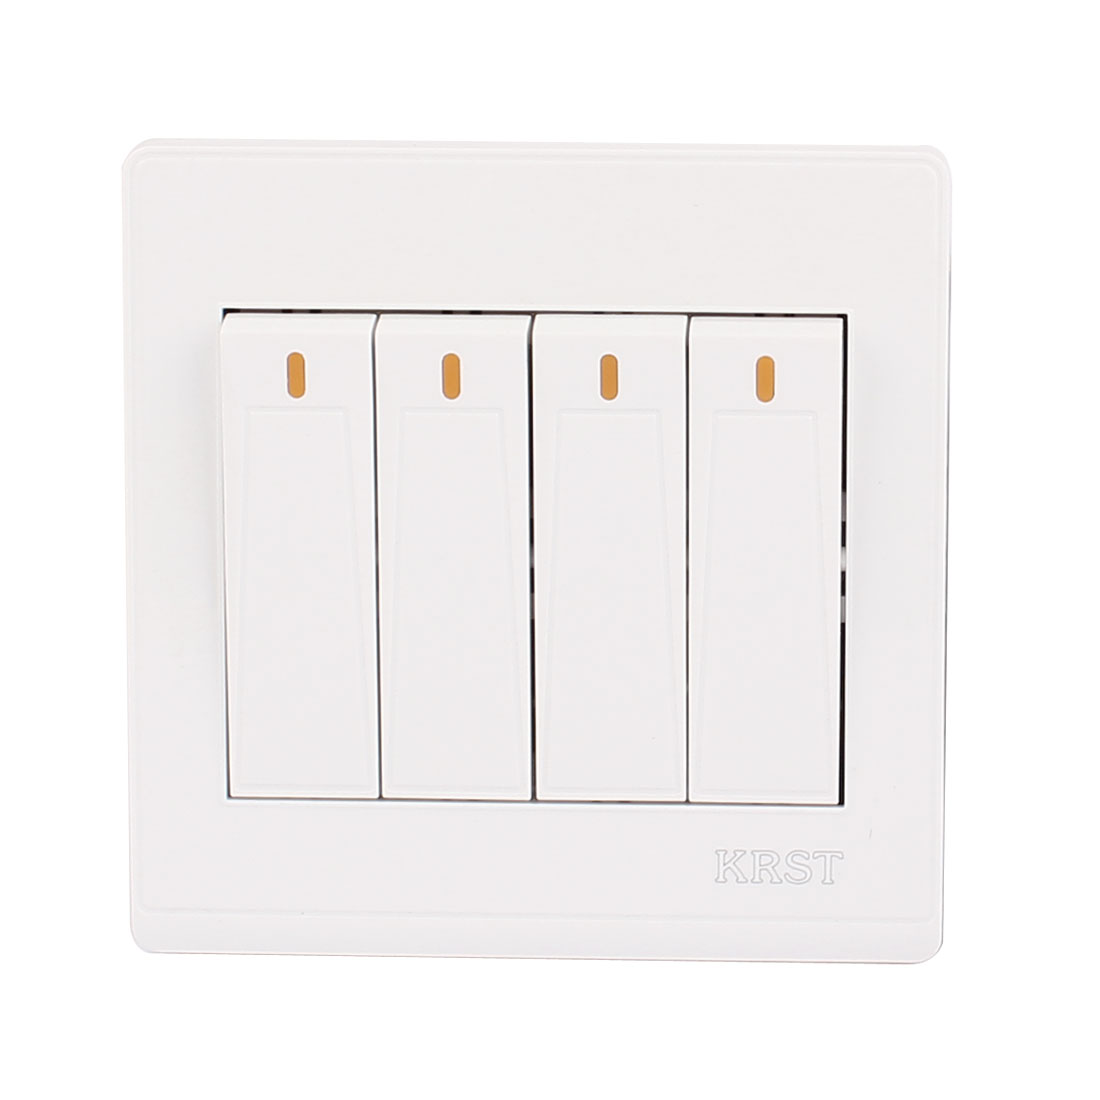 UXCELL On/Off Press Button 4 Gang 2 Way Wall Switch Home Light Lamp Control White 5pcs lot 3 colors new arrival mini lockless on off push button switch press the reset switch ve062 p0 4